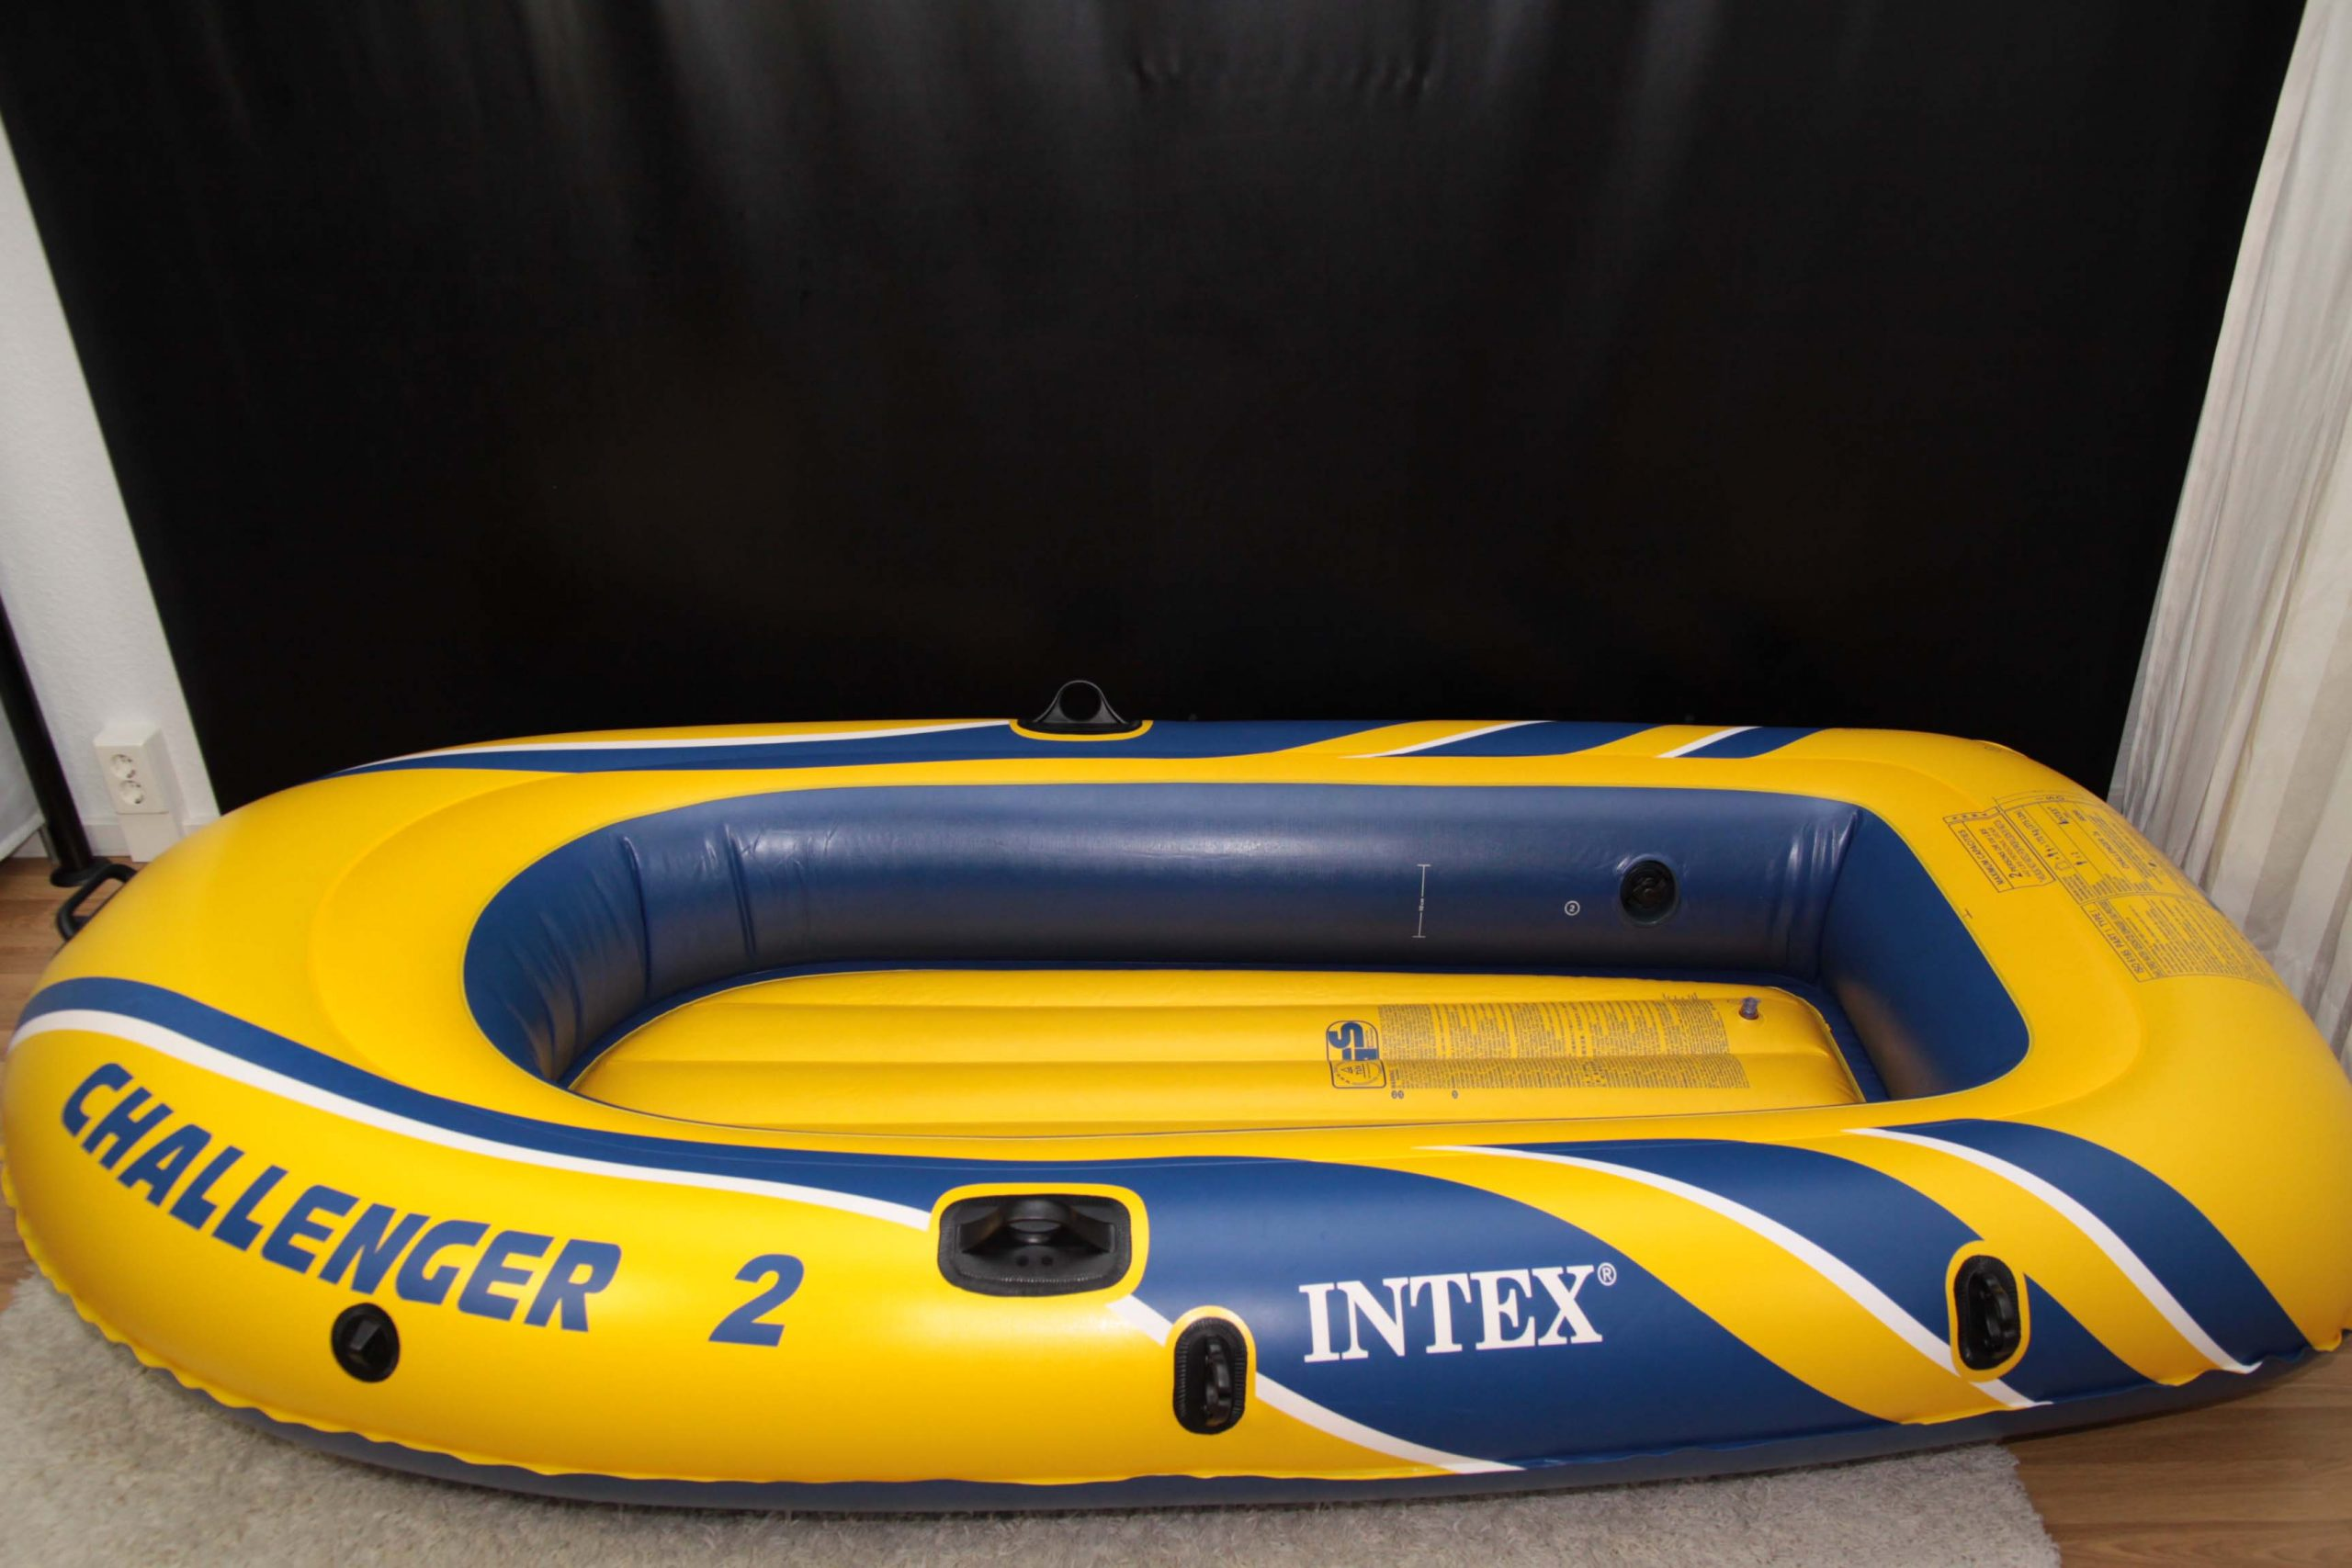 Rubber Boat – Yellow